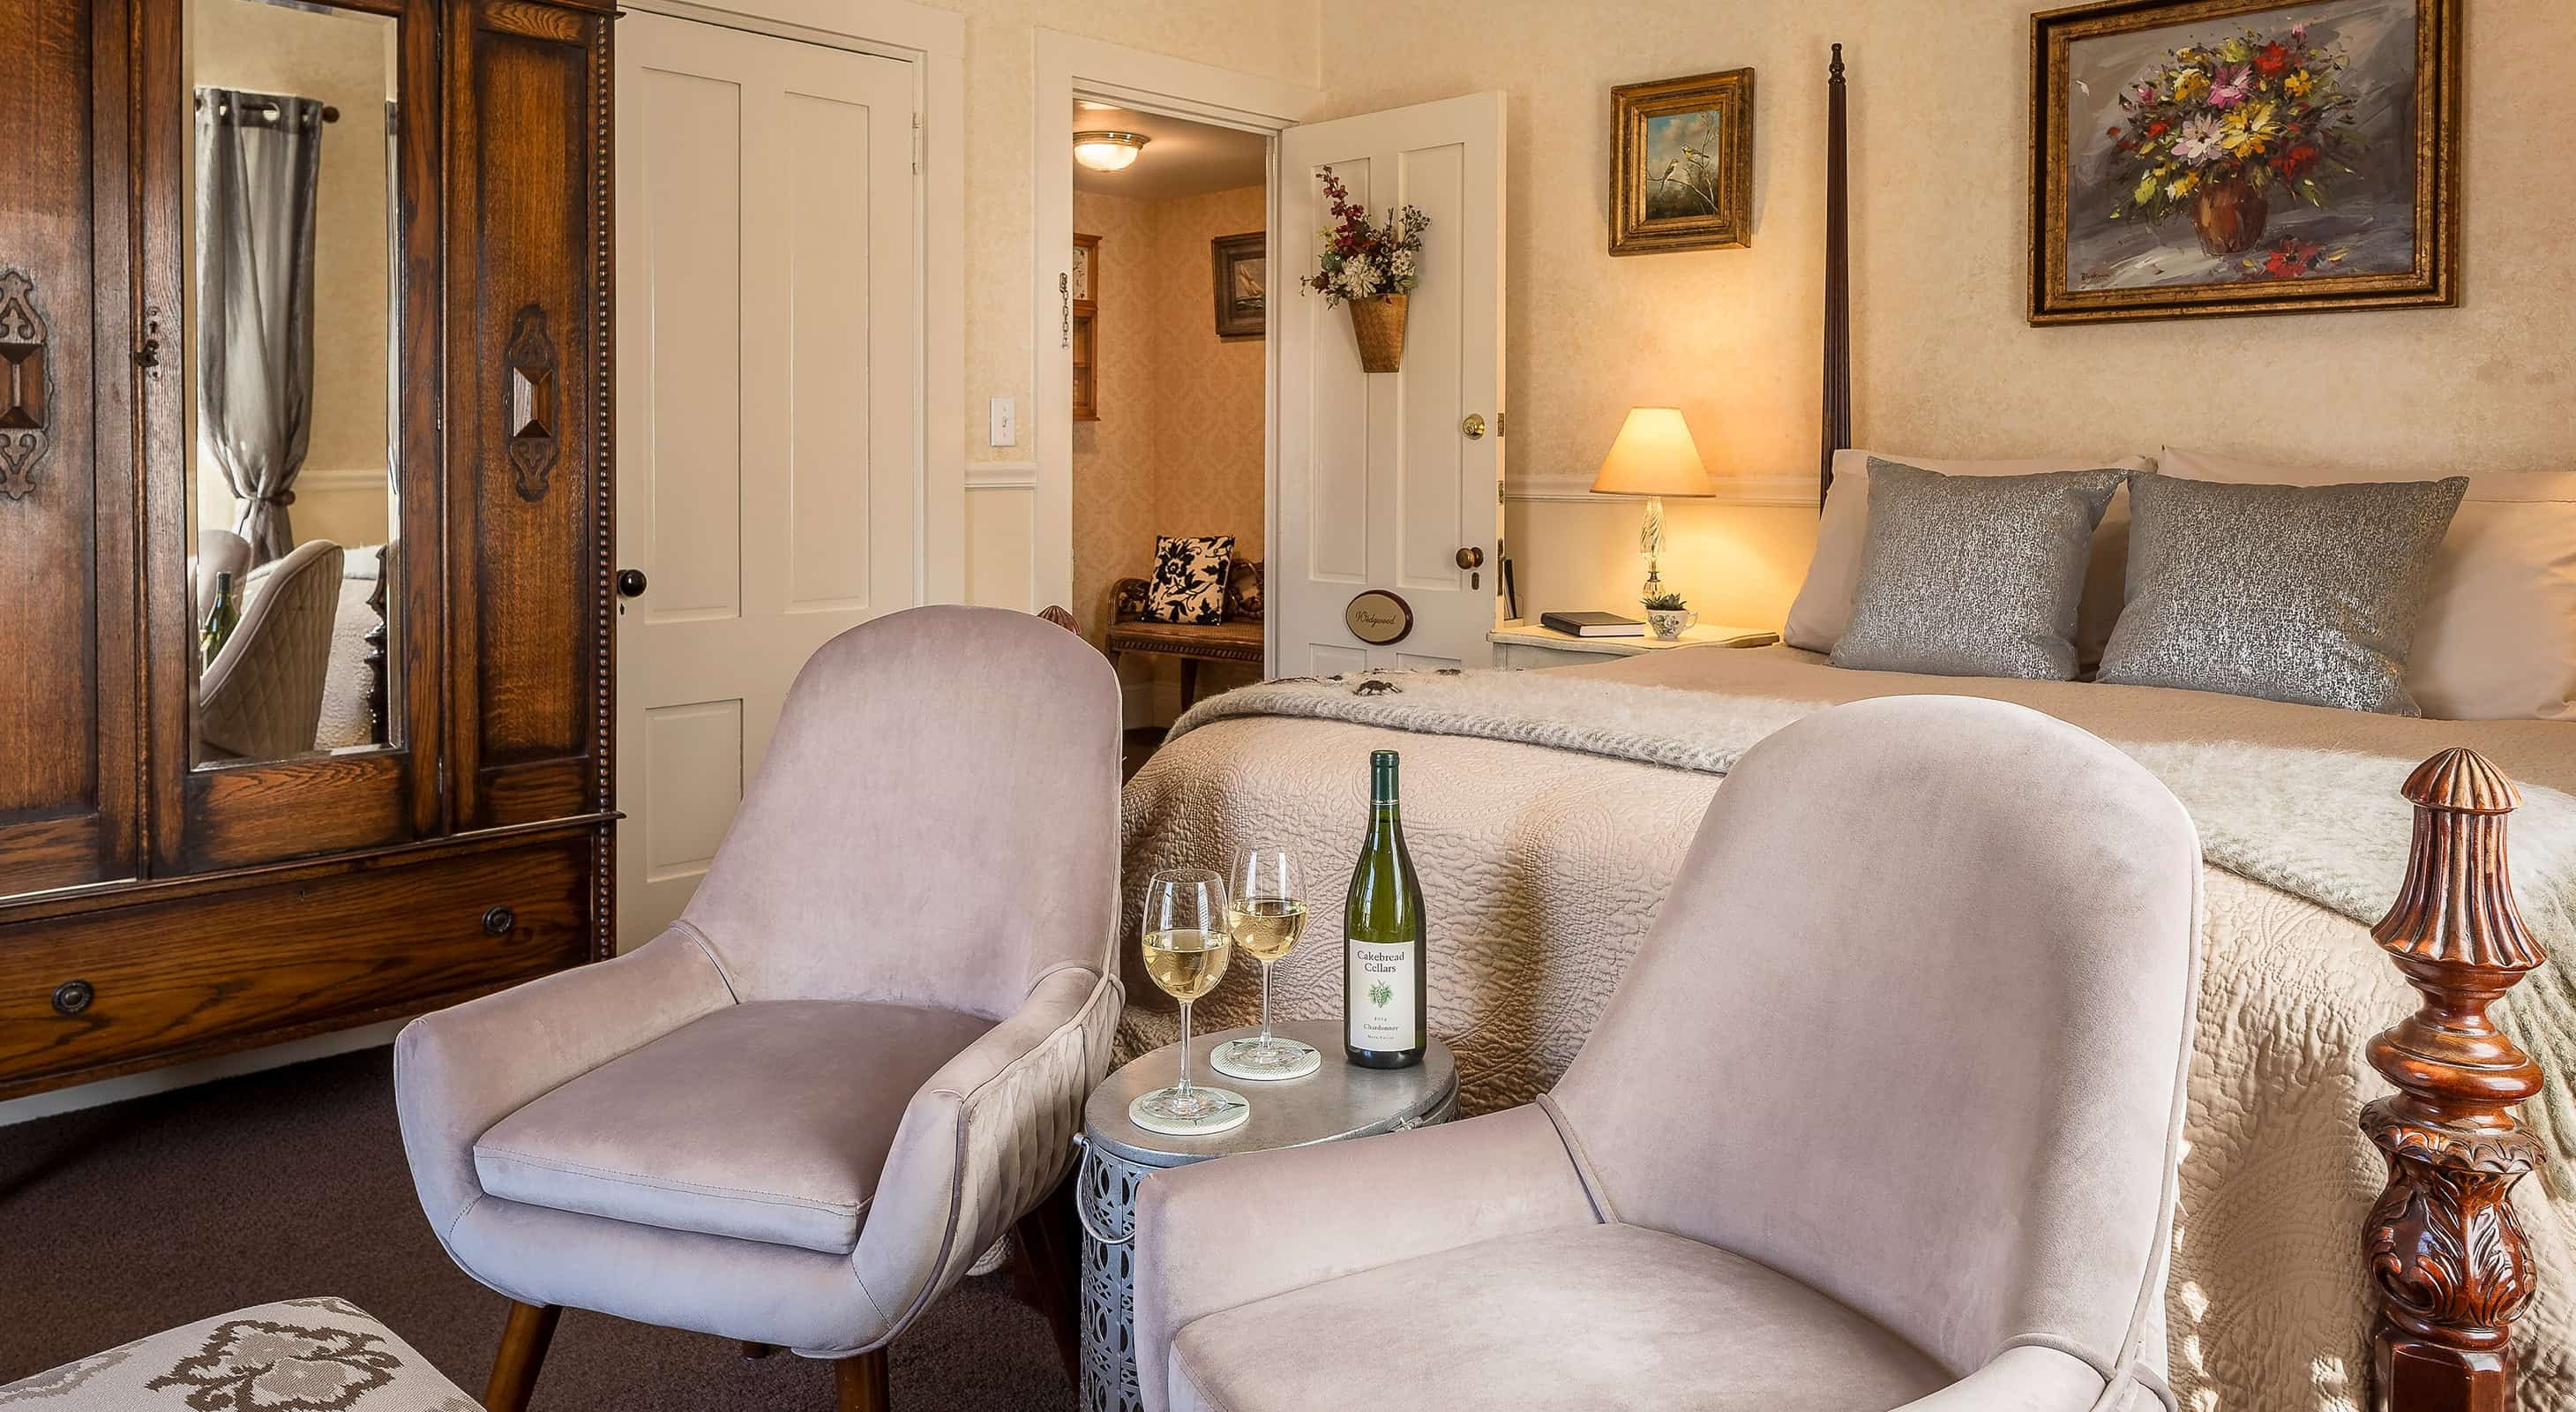 Luxurious room with a bed and seating area at our Camden bed and breakfast